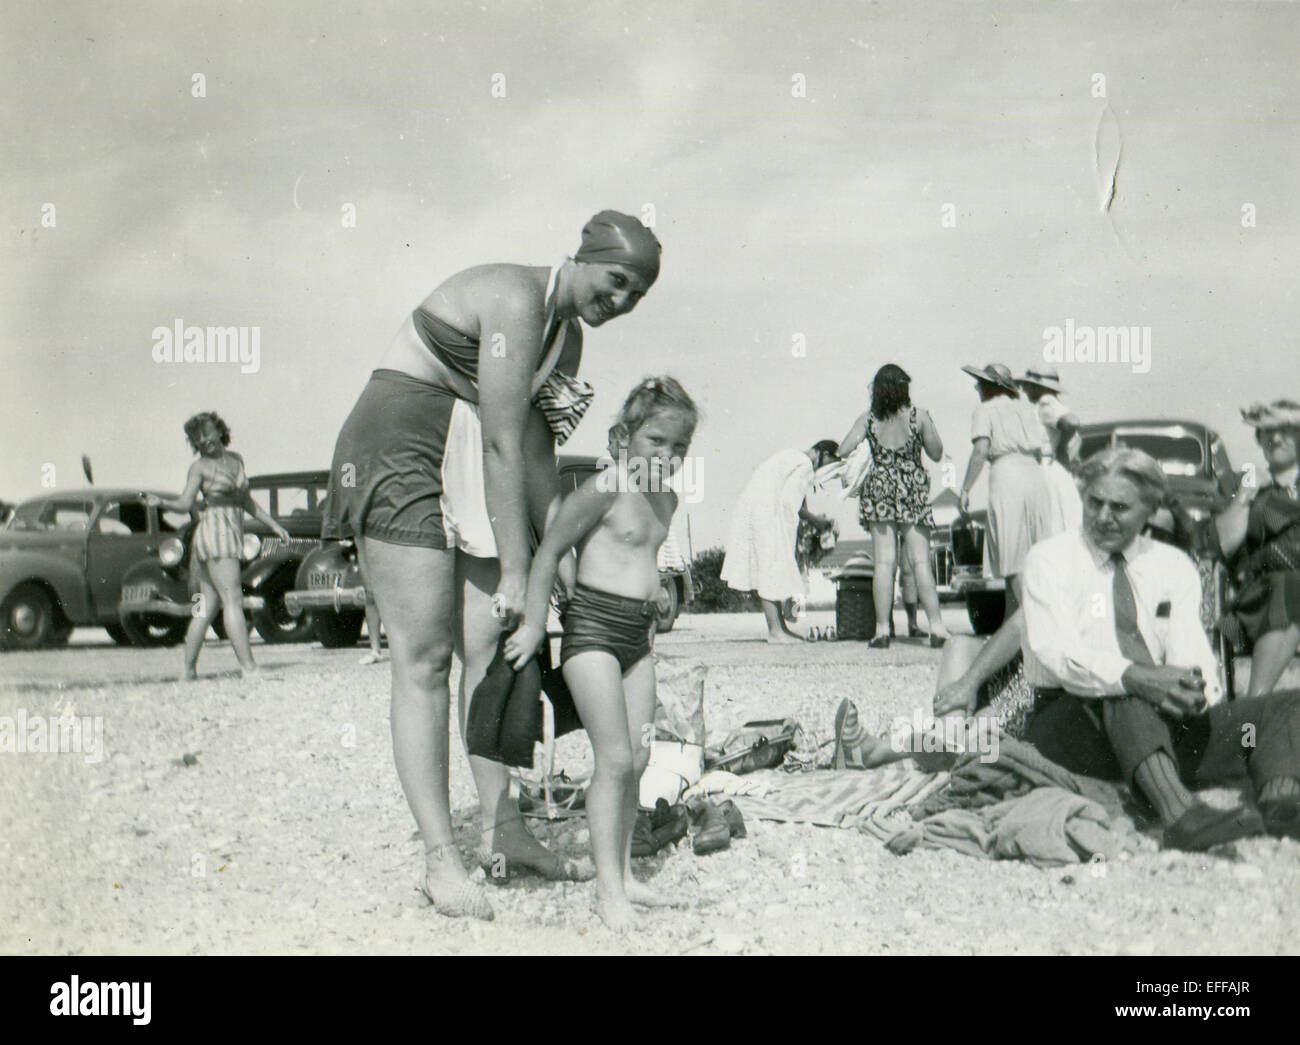 Dec. 12, 2014 - CANADA - CIRCA 1930s: Reproduction of an antique photo shows A woman in a bathing suit and a rubber Stock Photo